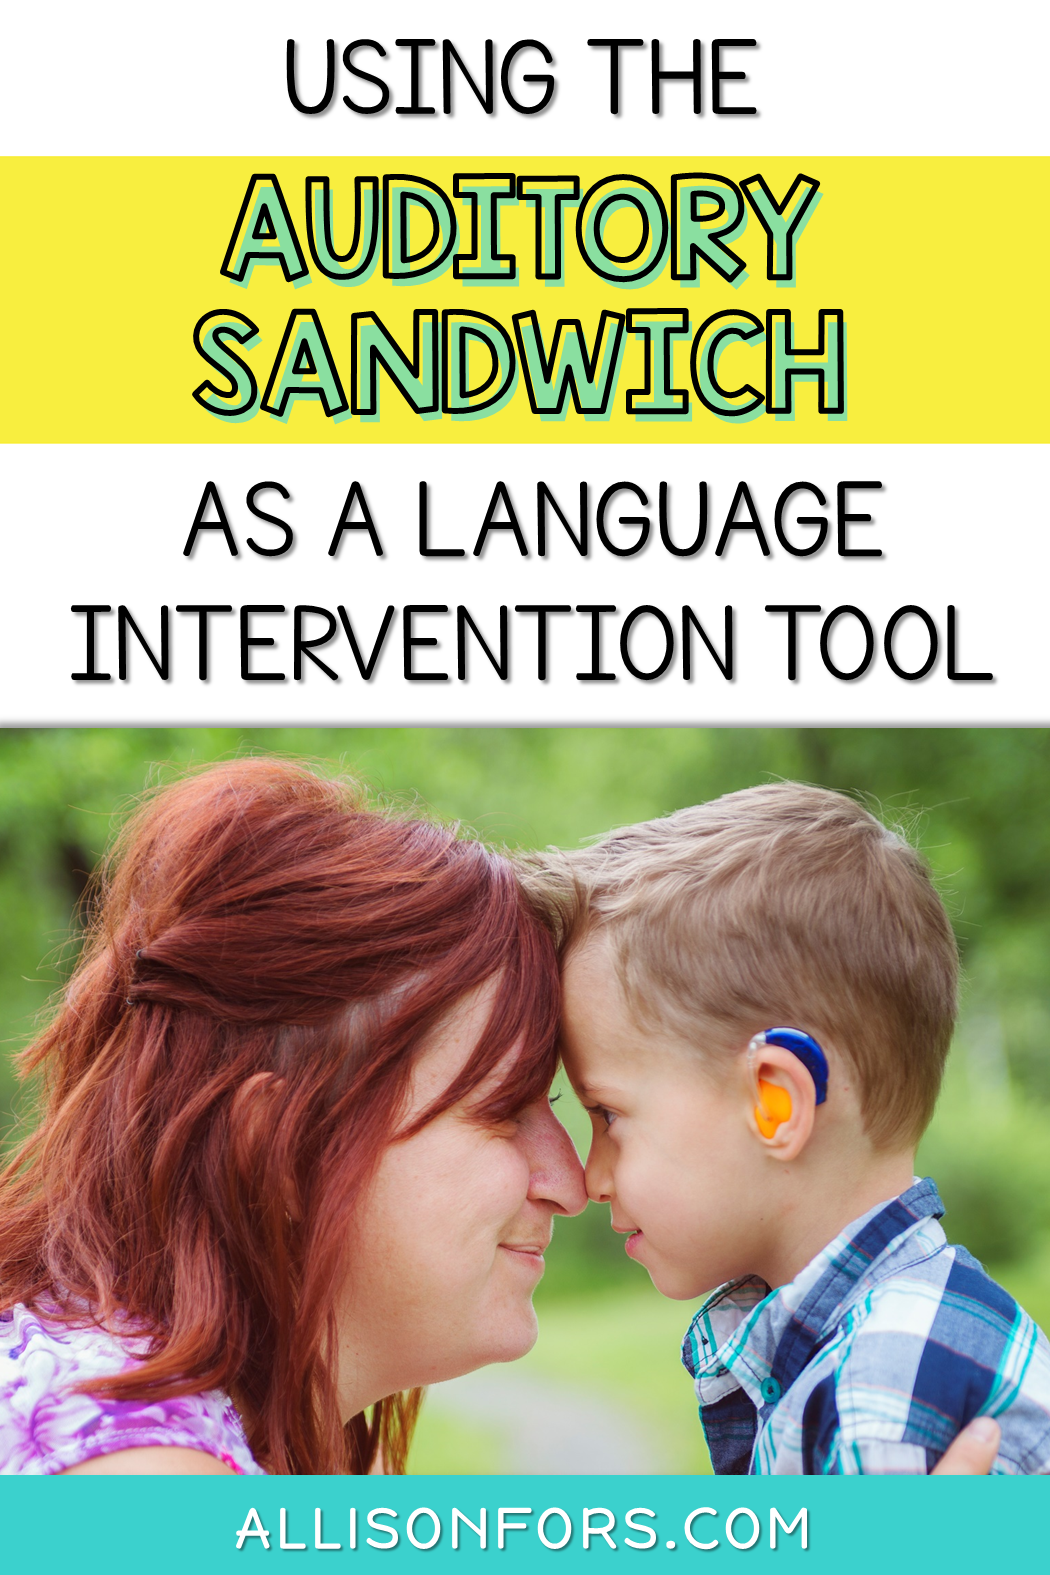 Using The Auditory Sandwich As A Language Intervention